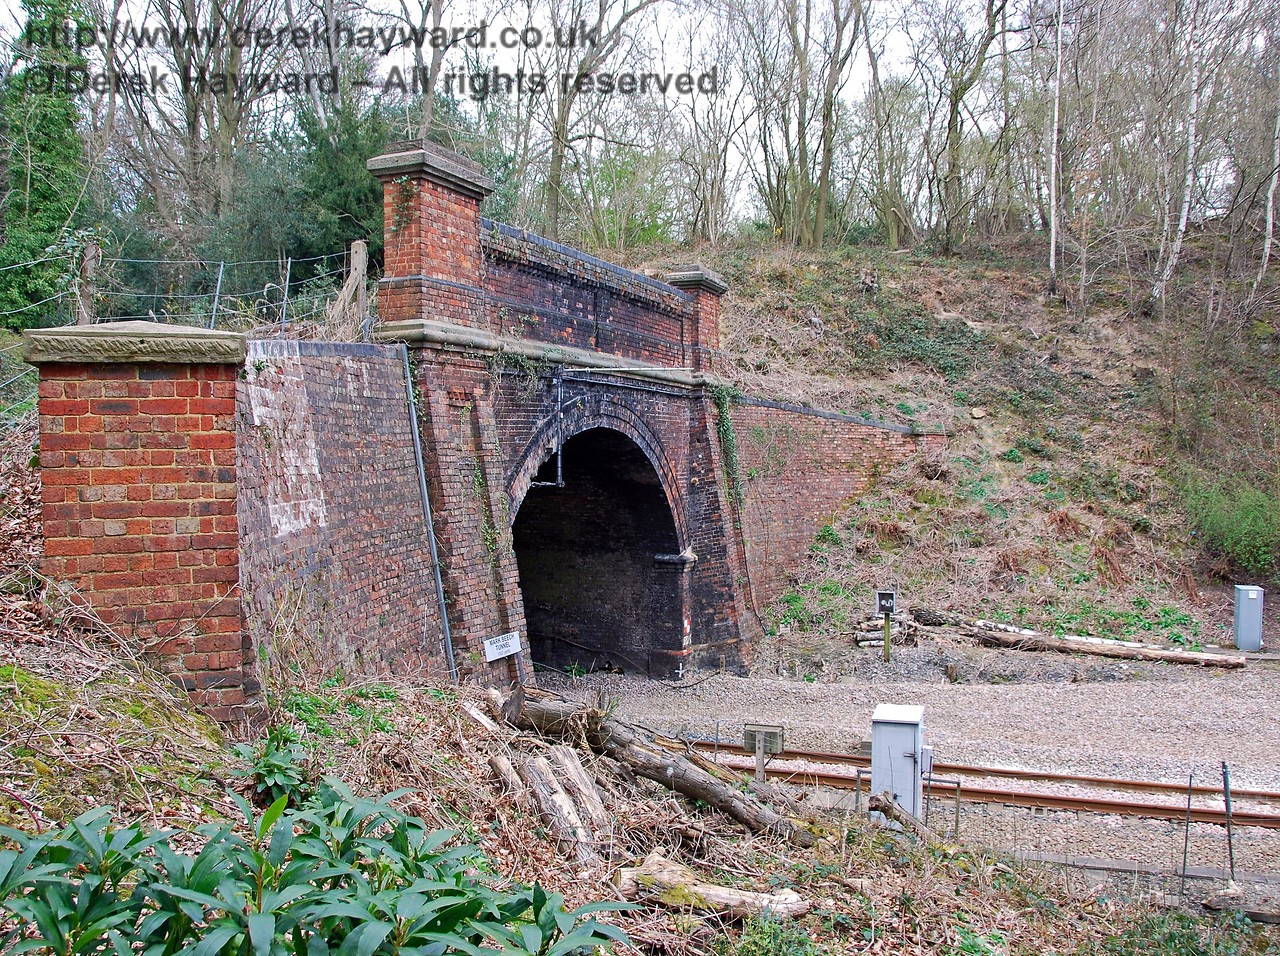 A second view of the southern portal of Markbeech Tunnel. Radio antennas for the Cab Secure Radio system can be seen attached to the roof of the tunnel. 10.04.2008